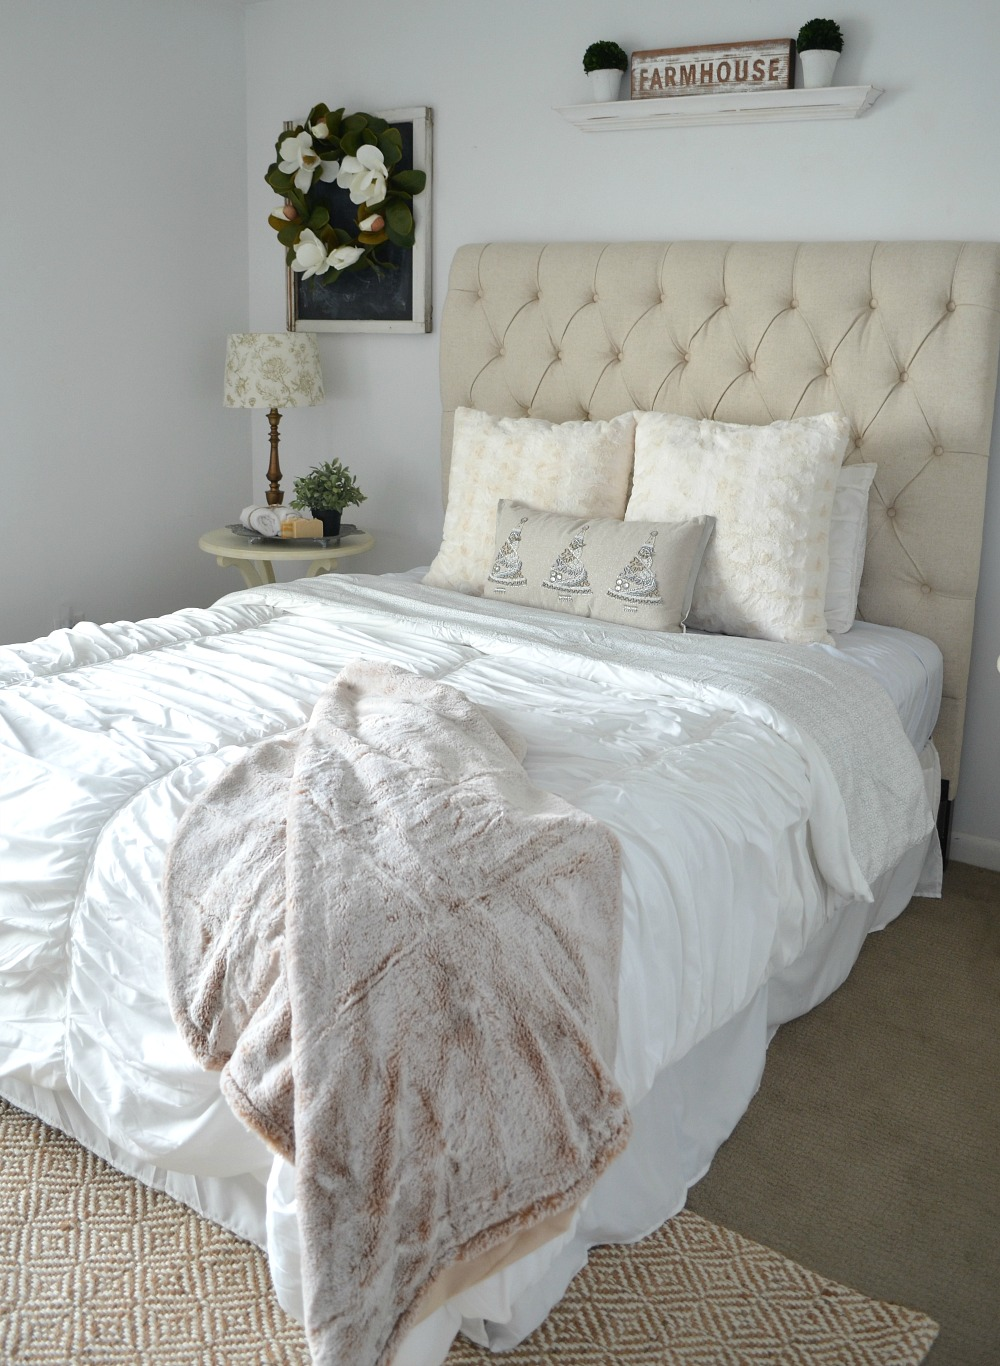 Cozy guest bedroom refresh for Farmhouse guest bedroom